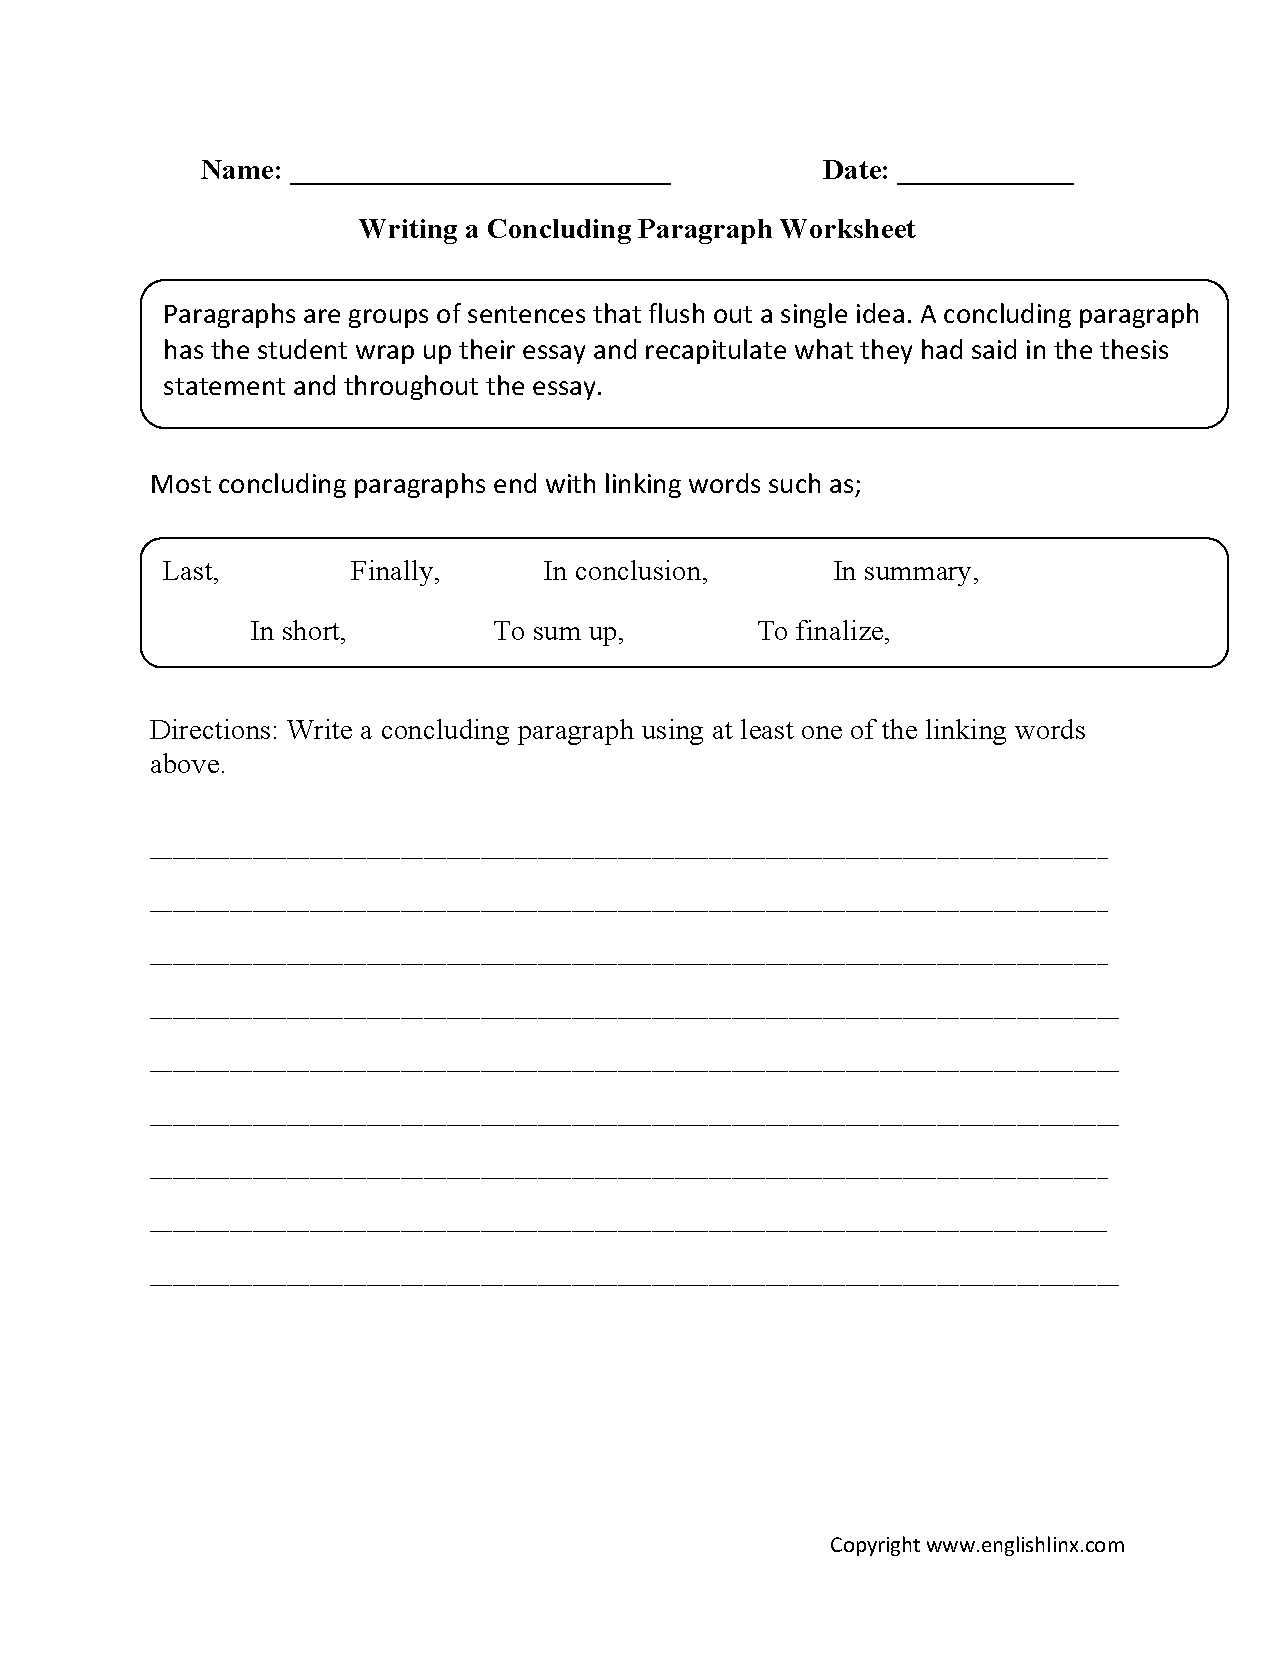 Worksheets Writing A Paragraph Worksheet writing worksheets paragraph concluding worksheets